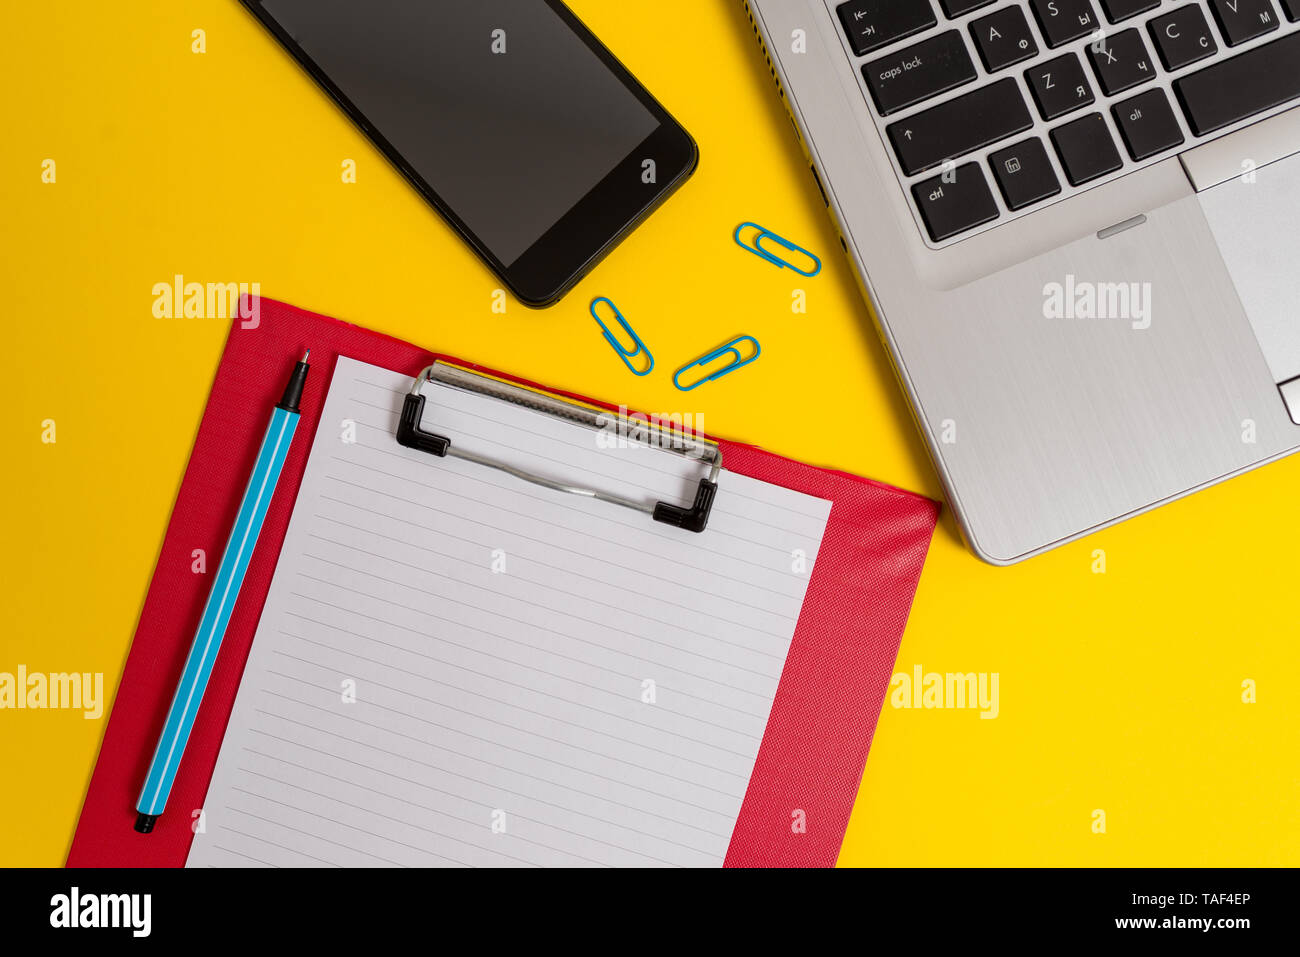 Open laptop clipboard sheet smartphone marker clips colored background - Stock Image